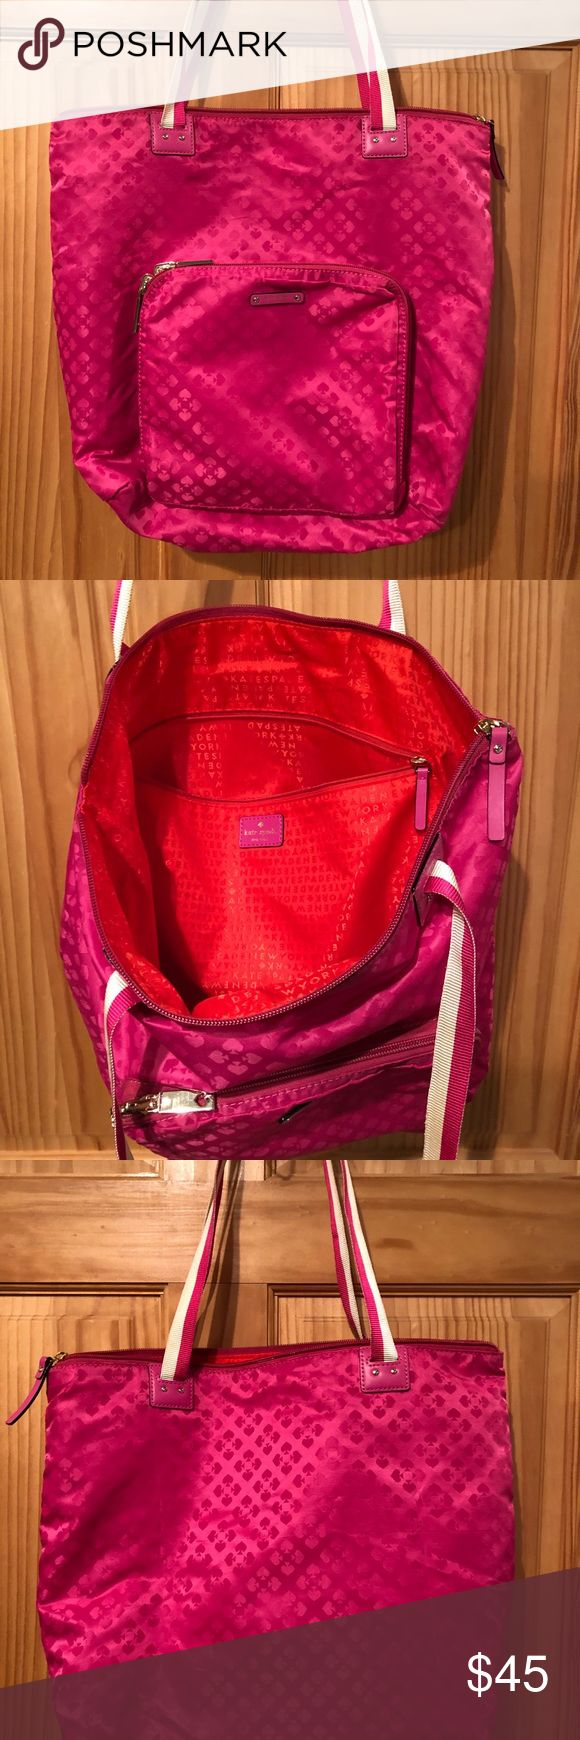 Kate Spade pink nylon tote bag purse Great condition Kate Spade bag. Nylon with zipper and gold accents. Super cute! All my items come from a smoke free home. Thanks for looking! Happy Shopping! kate spade Bags Totes